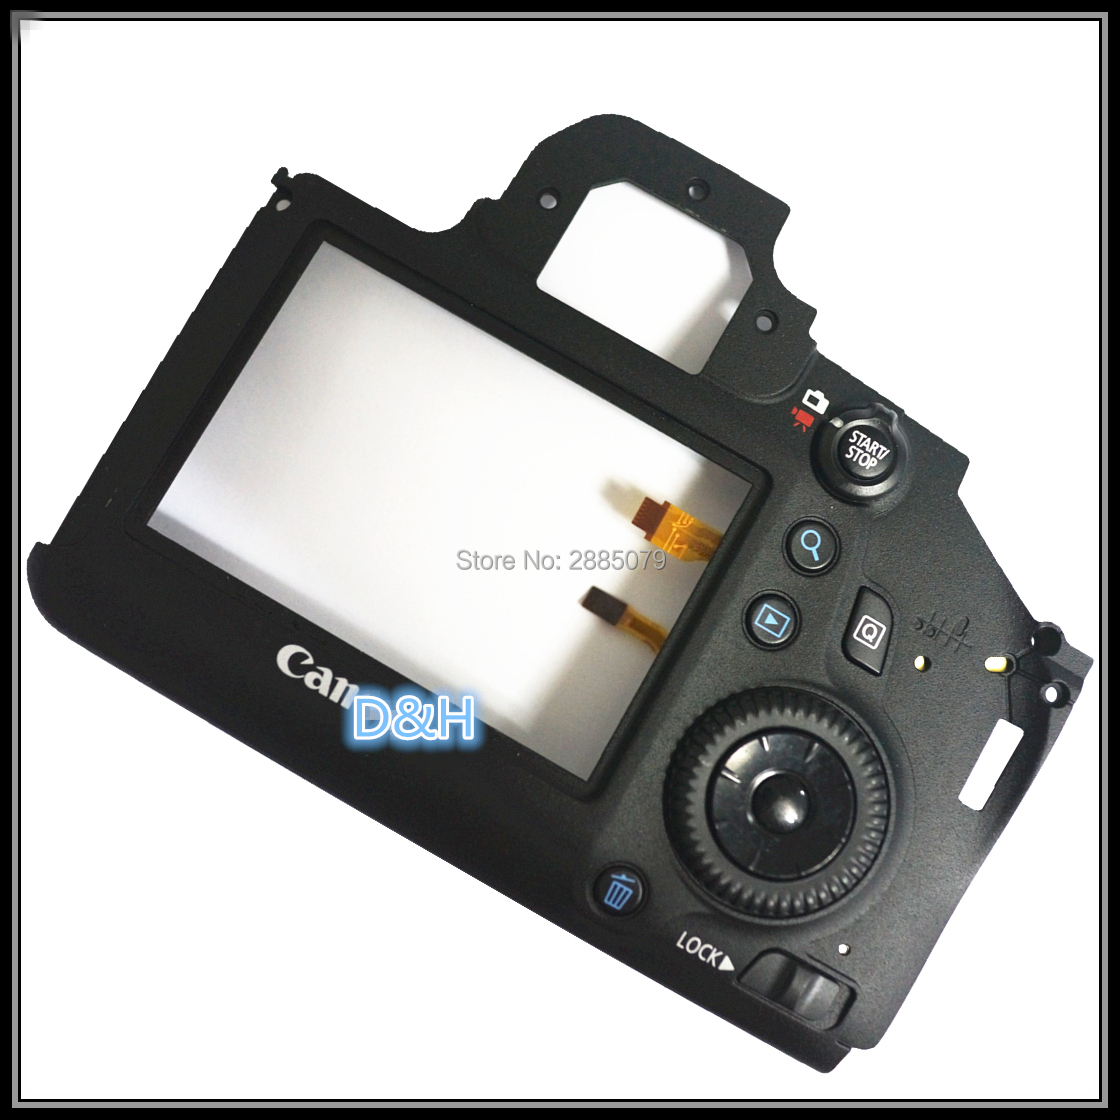 Repair Parts For Canon for EOS 6D Back Cover Rear Shell Assy With LCD External Screen Protection Board Menu Button CableRepair Parts For Canon for EOS 6D Back Cover Rear Shell Assy With LCD External Screen Protection Board Menu Button Cable